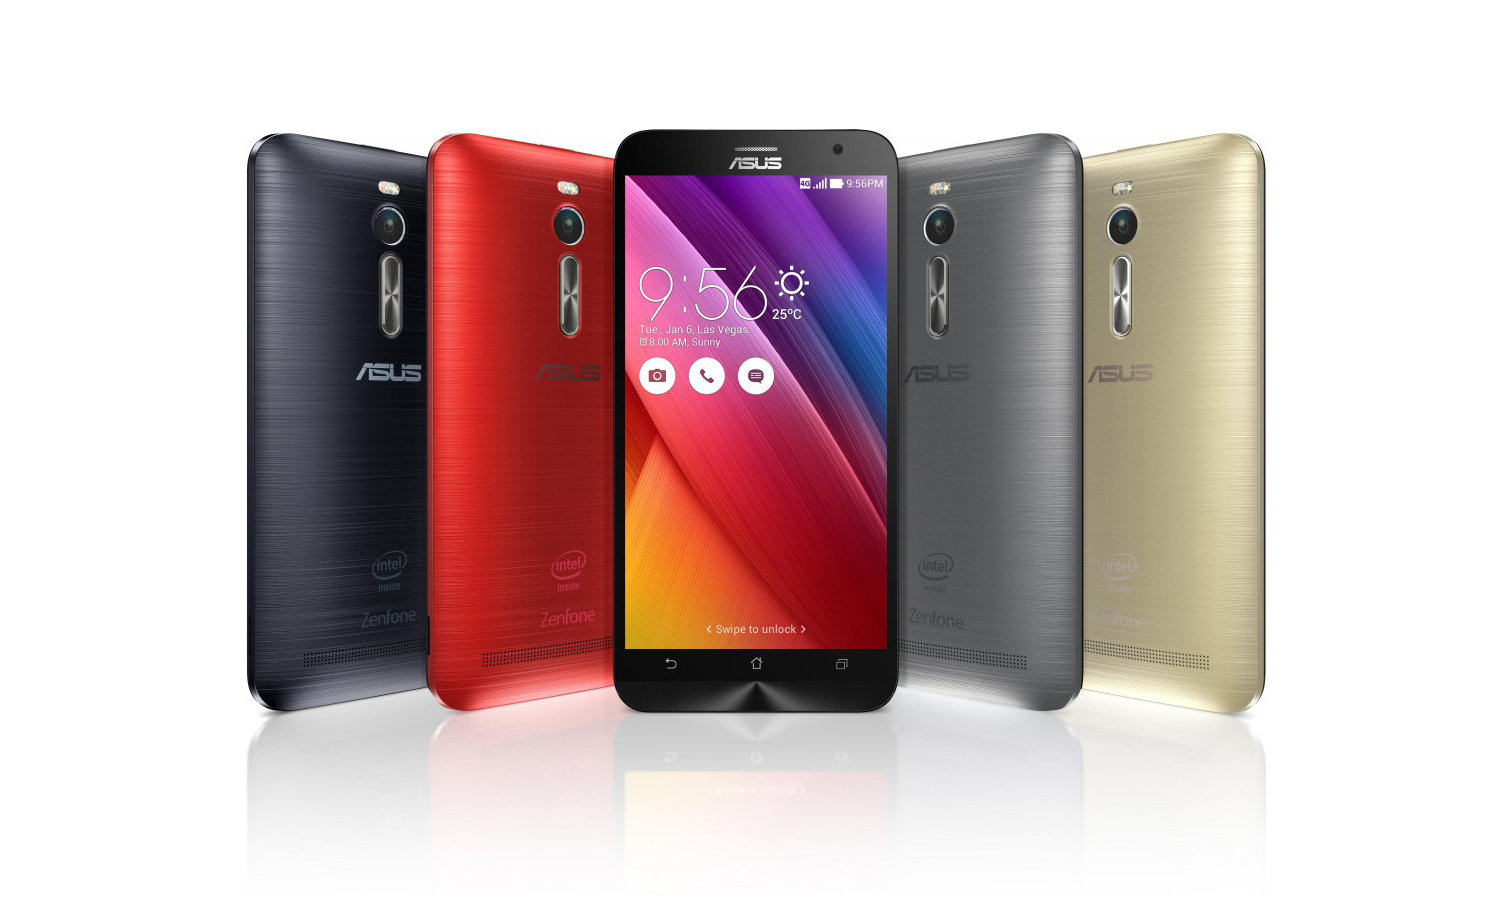 [REVIEW+GIVEAWAY] Asus Zenfone 2